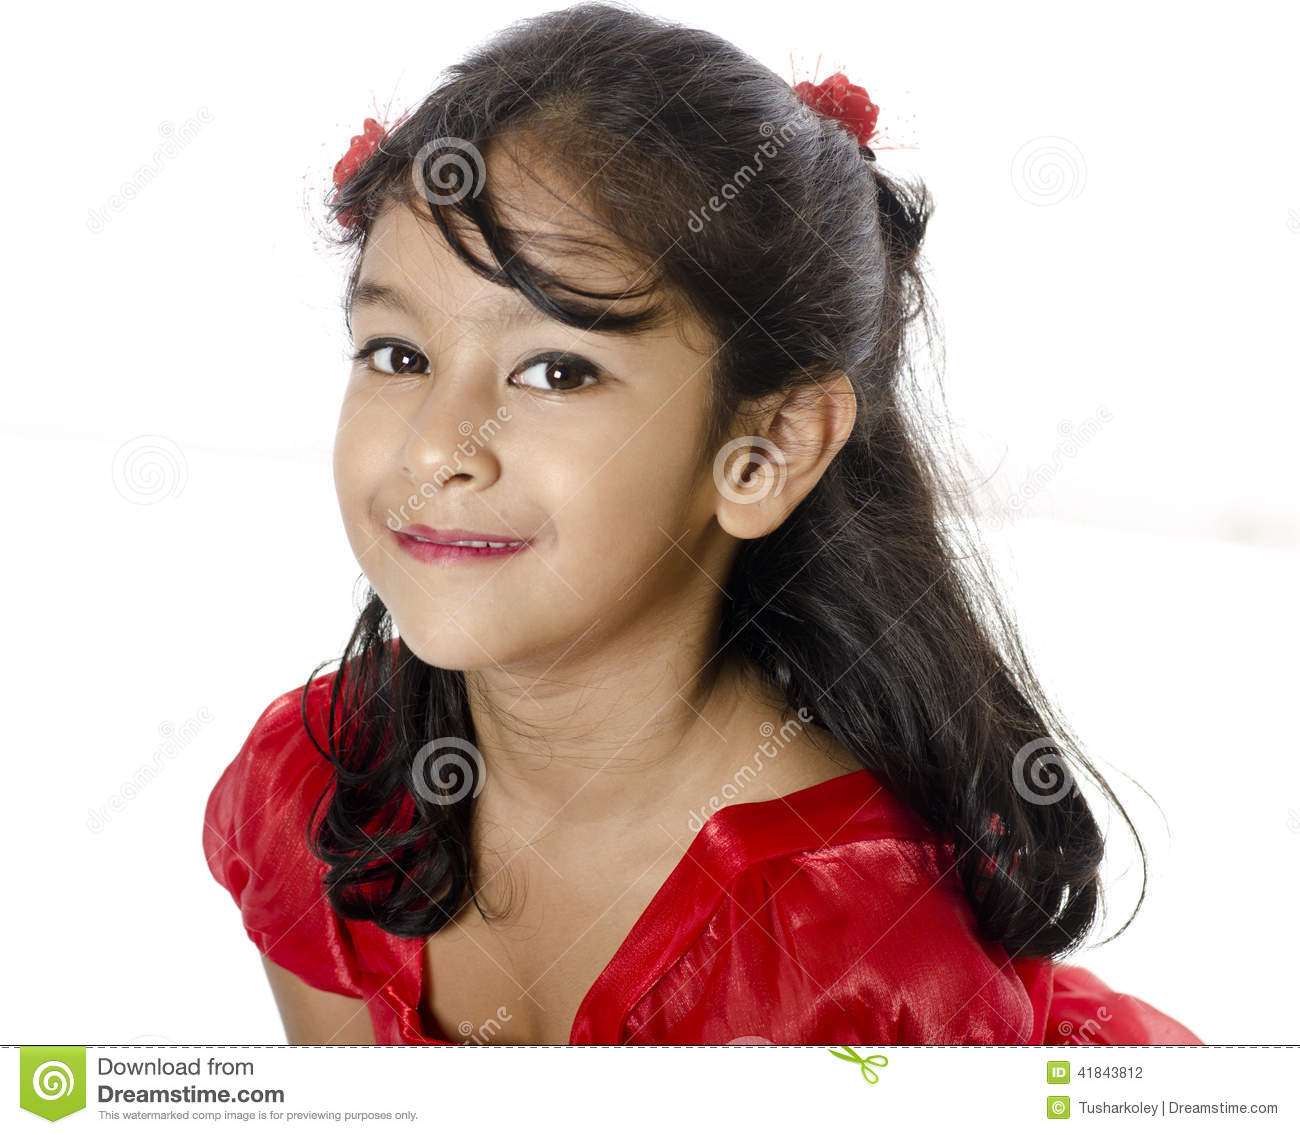 cute girl happy mood stock images - download 11,328 photos